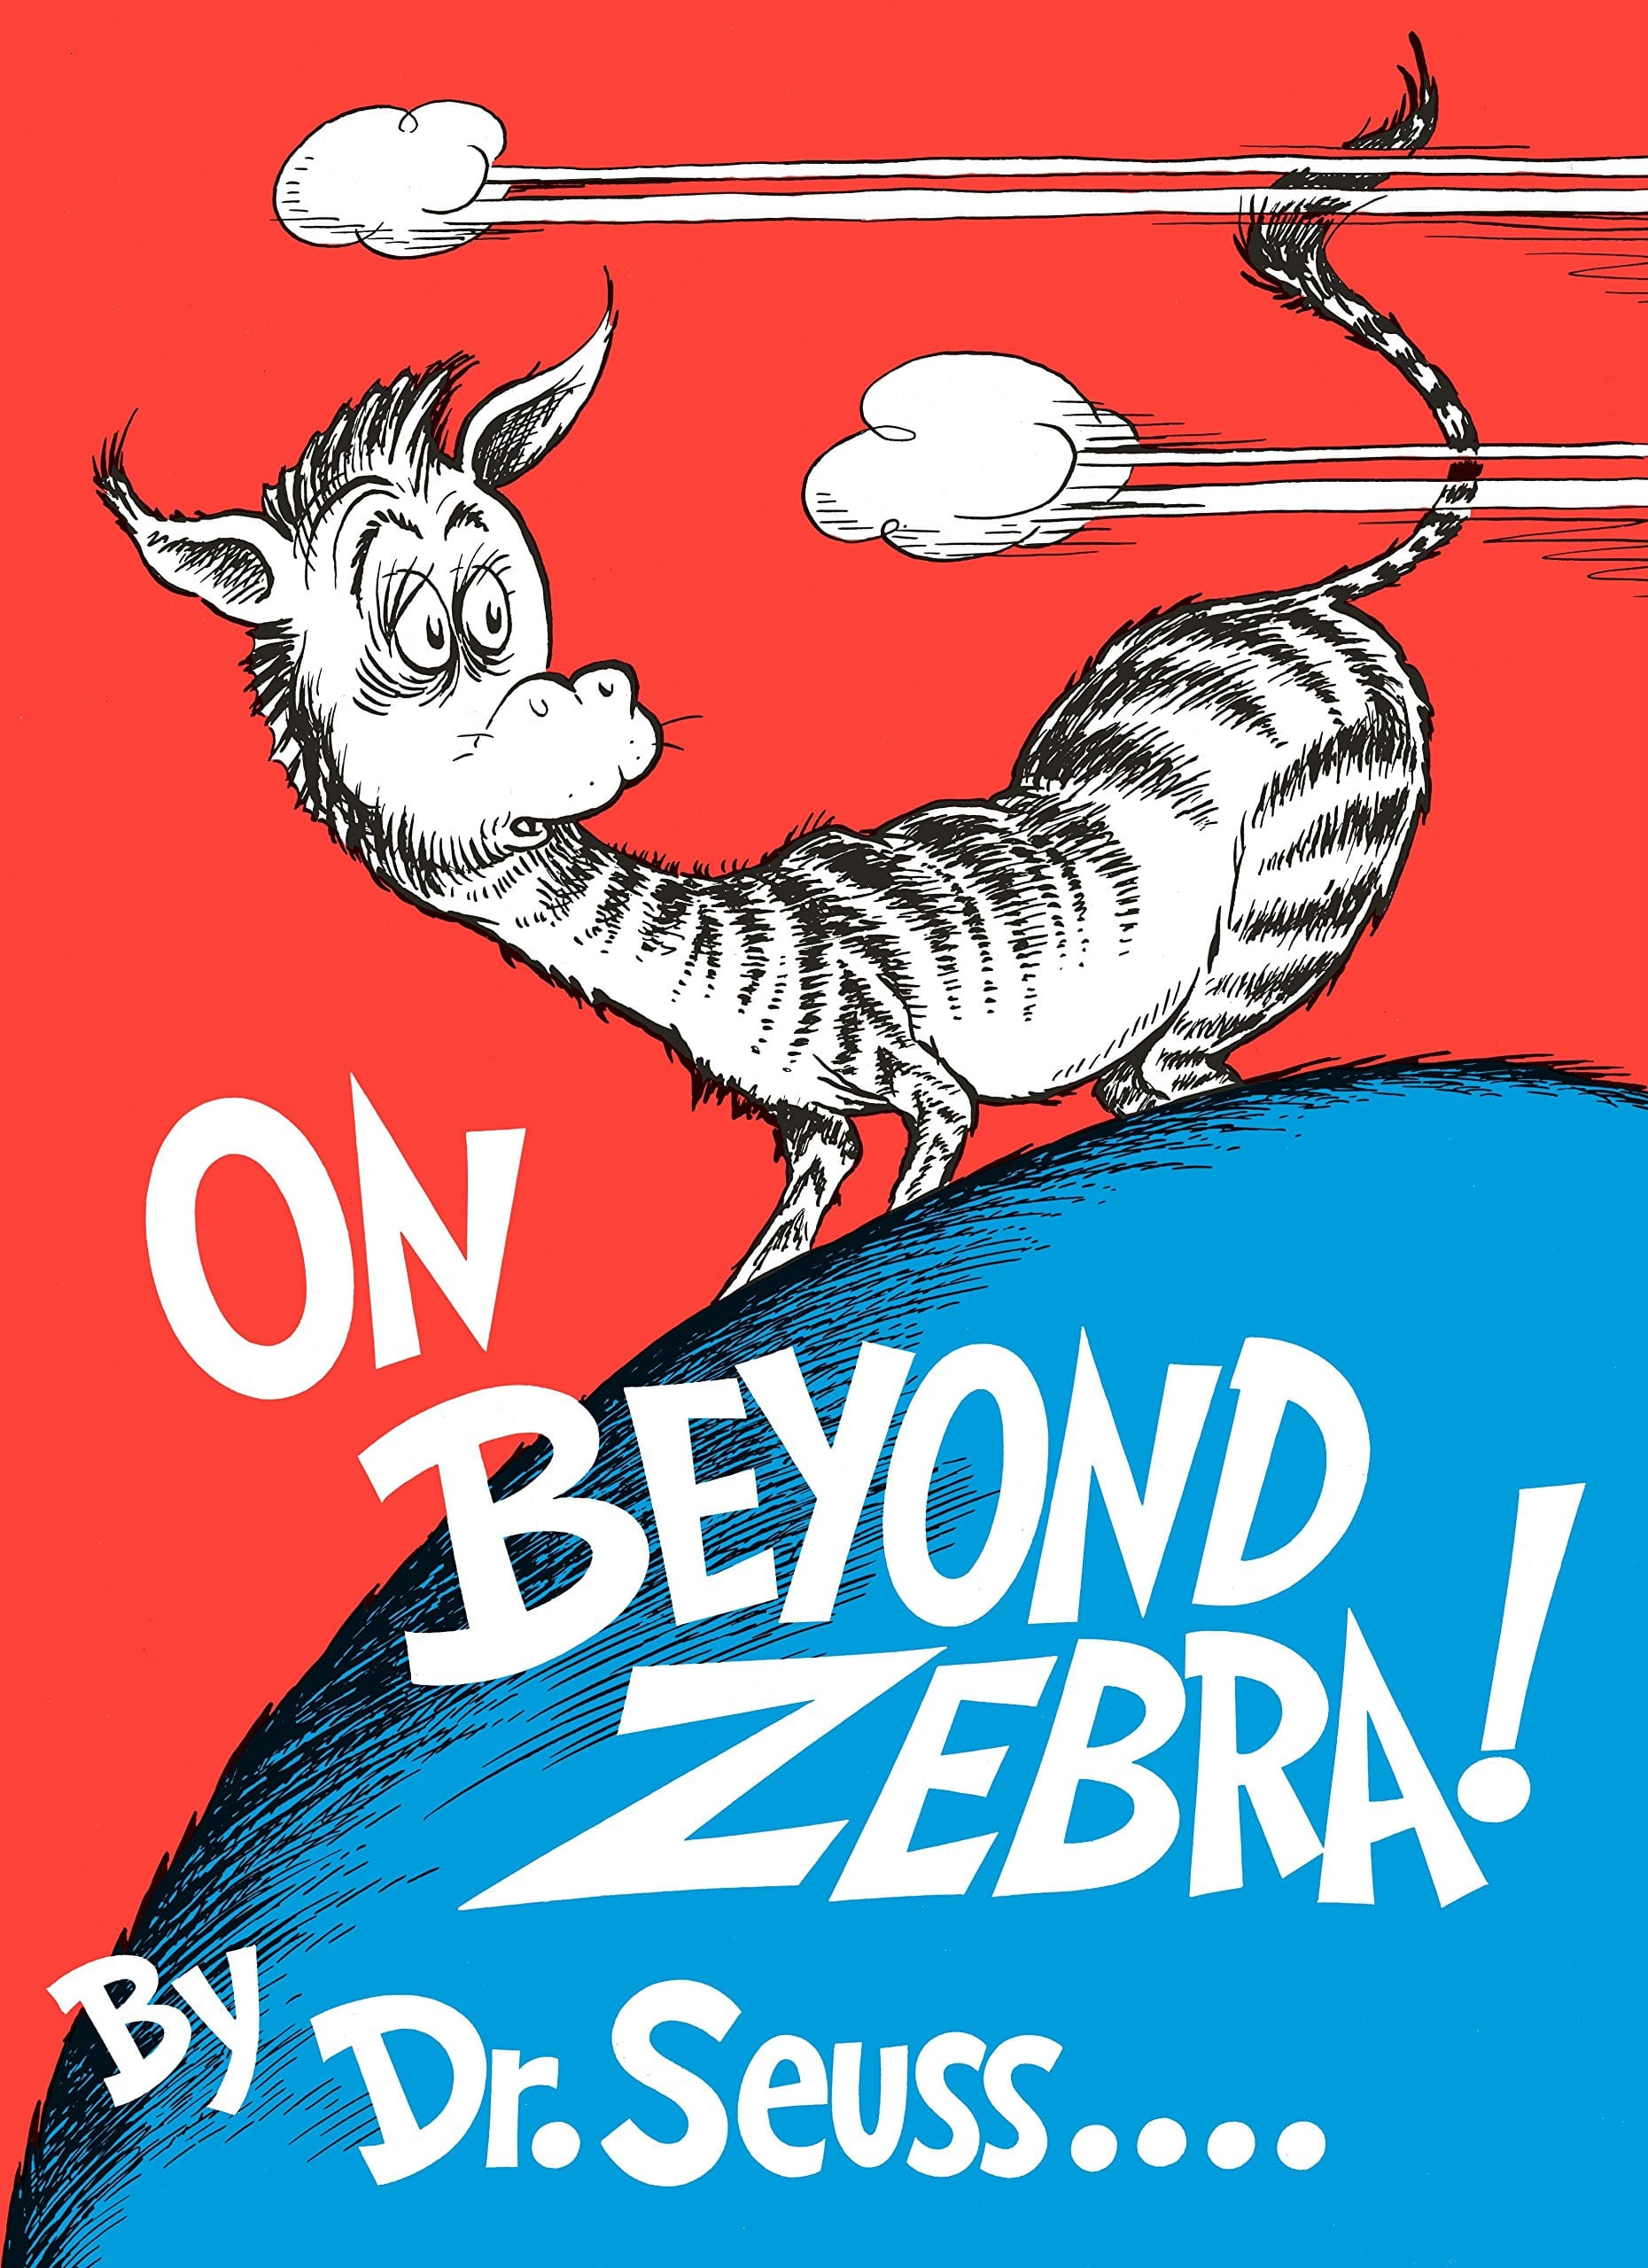 6 Dr. Seuss books will no longer be published because of racist imagery 13